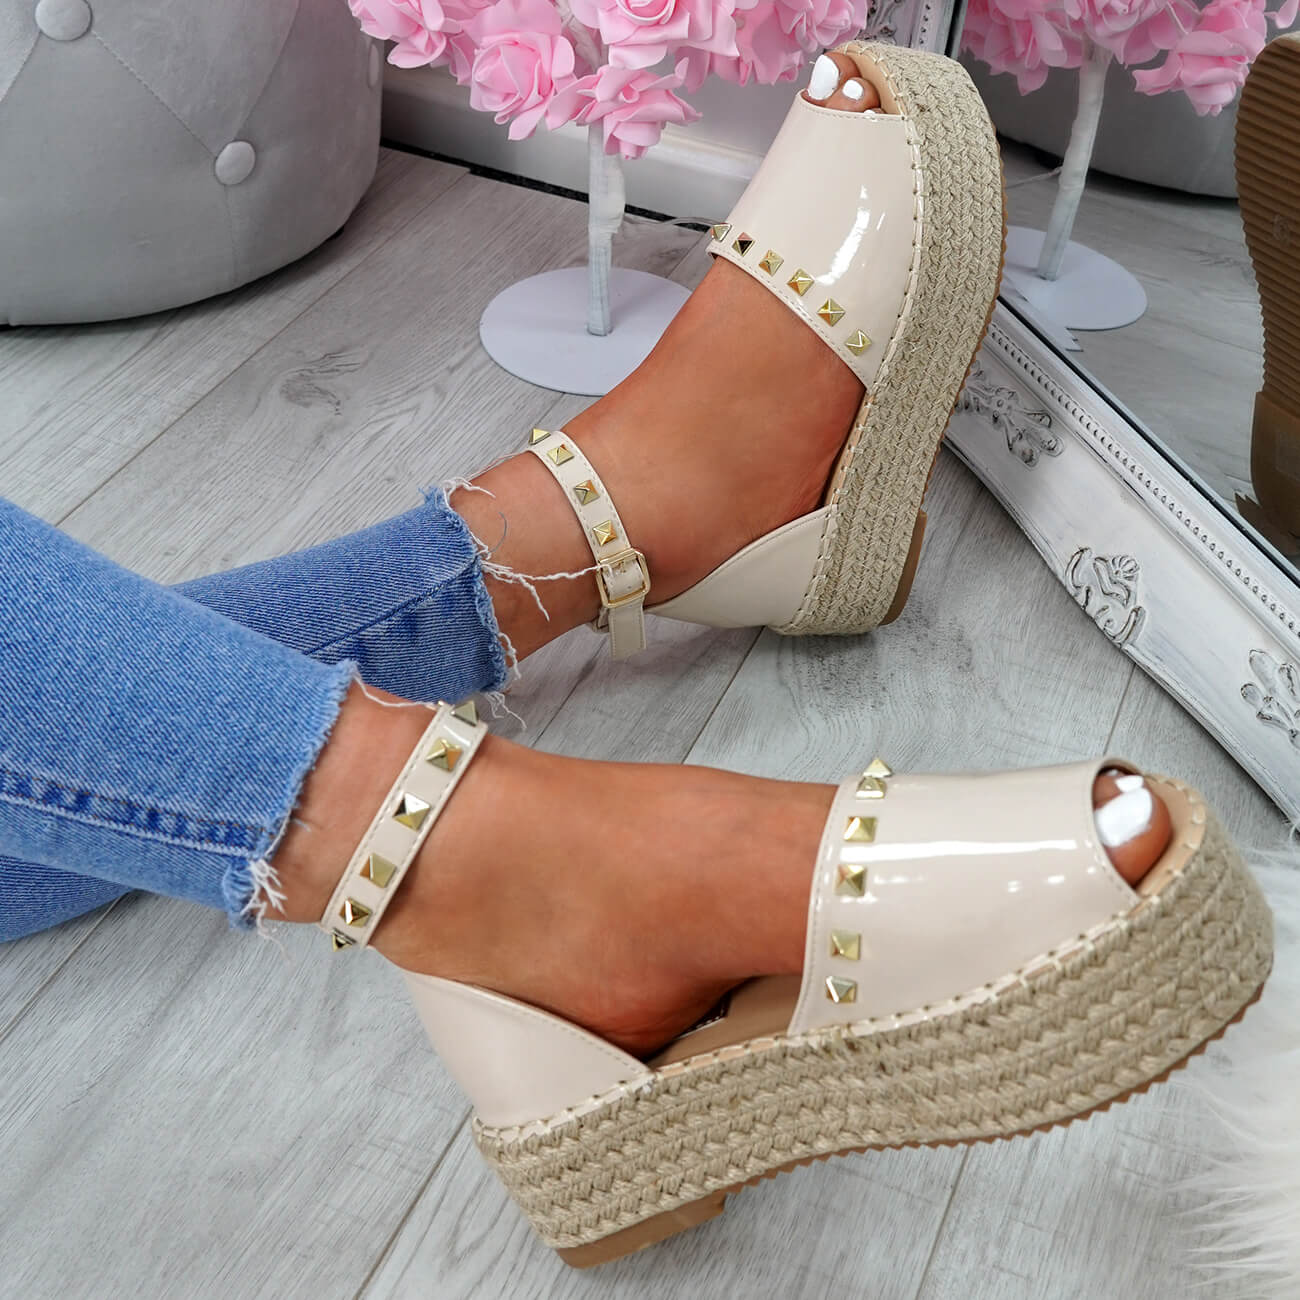 WOMENS-LADIES-ROCK-STUDS-ESPADRILLE-FLATFORM-PLATFORM-SANDALS-CASUAL-SHOES-SIZE thumbnail 20